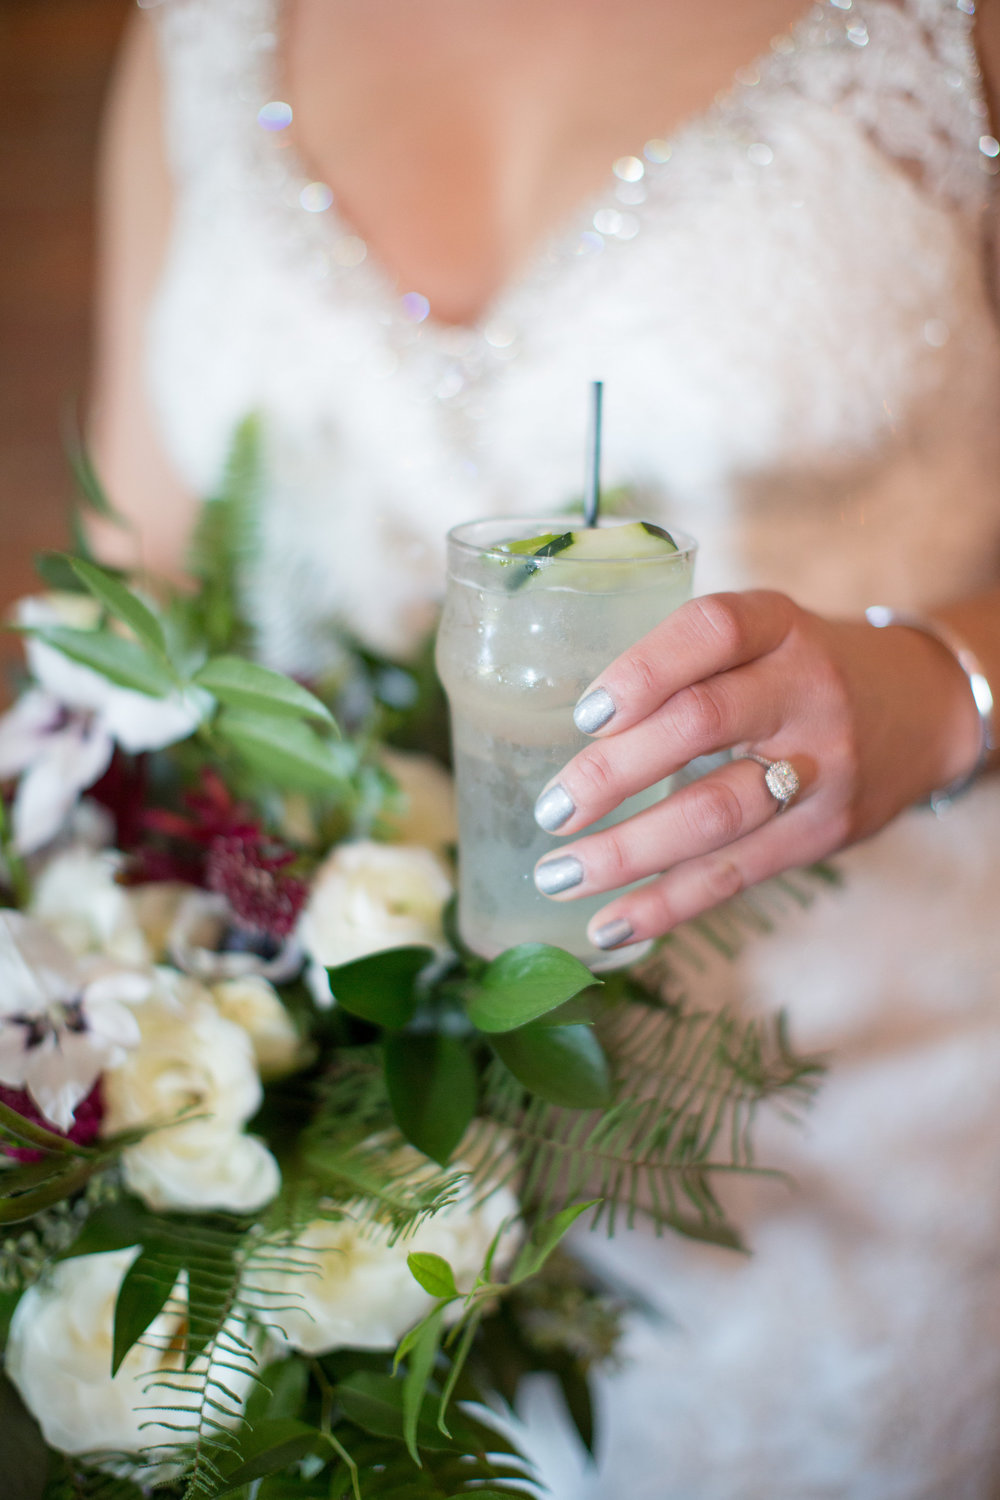 Great-Room_bouquet-ring-cocktail.jpg